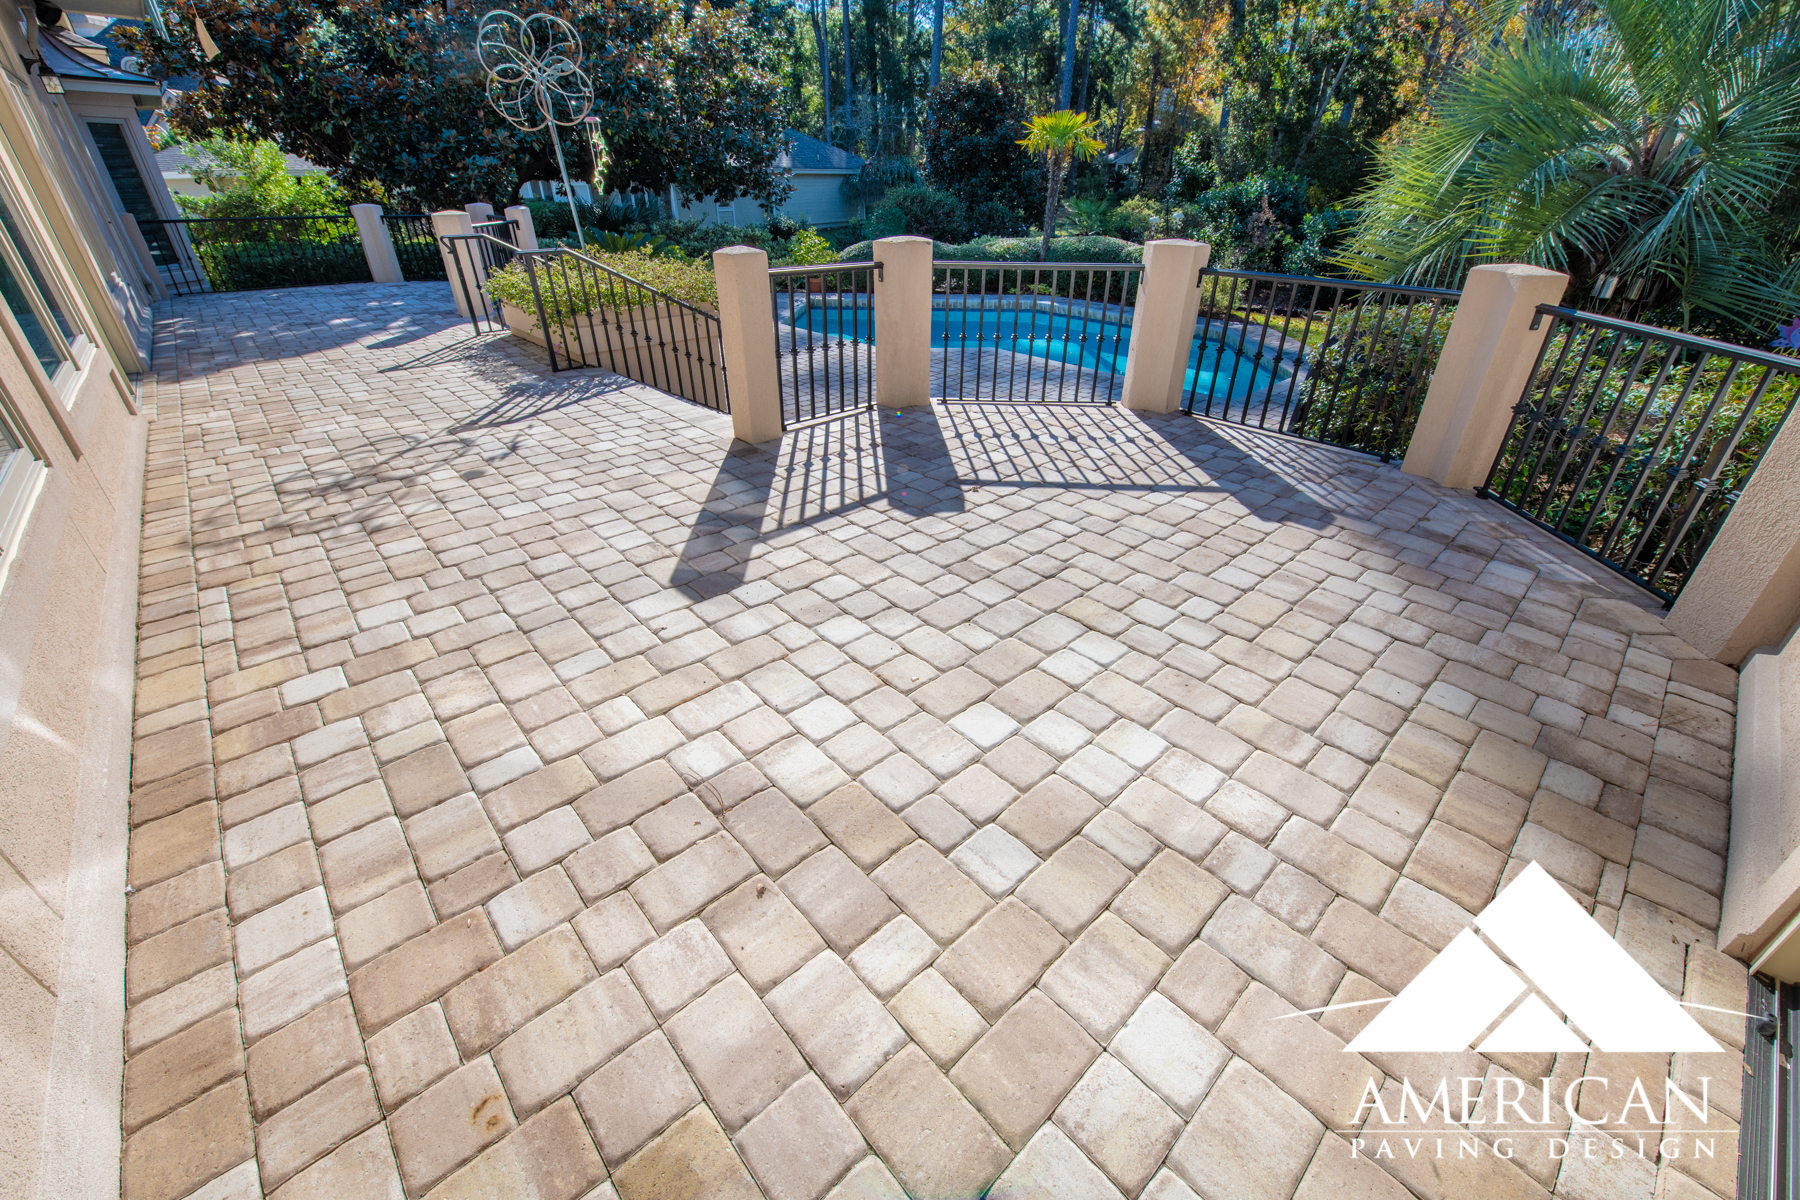 Create A Safe Non-Slip Surface Along Side Your Pool. Overlaying Your Pool Deck With Brick Pavers Ensures Safety & Appeal All In One!